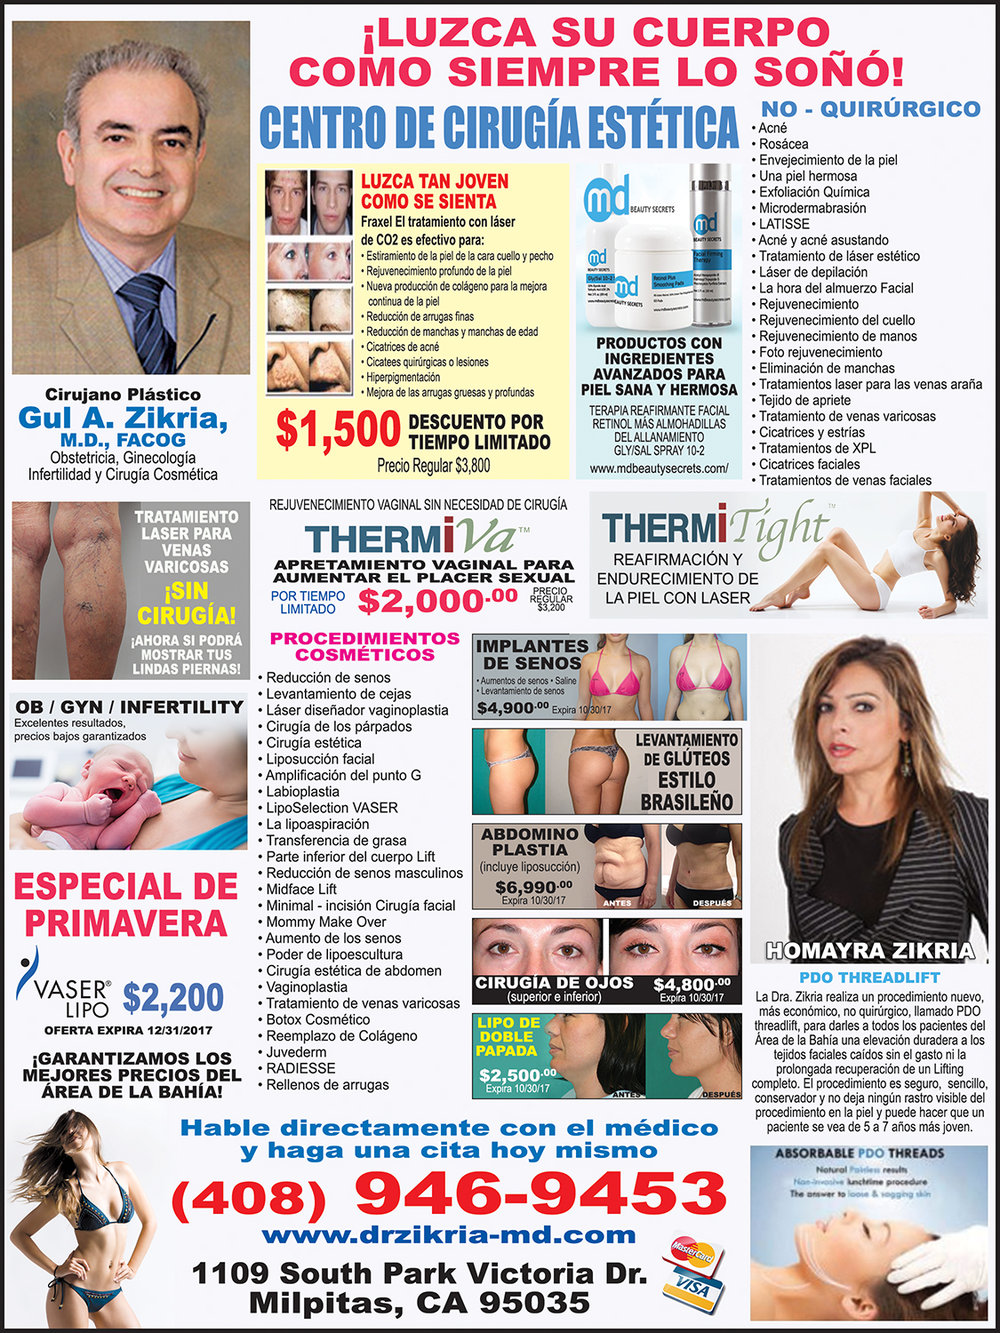 Cosmetic Surgery Center - Gul A Zikria MD 1 Pag -  MARZO 2018.jpg